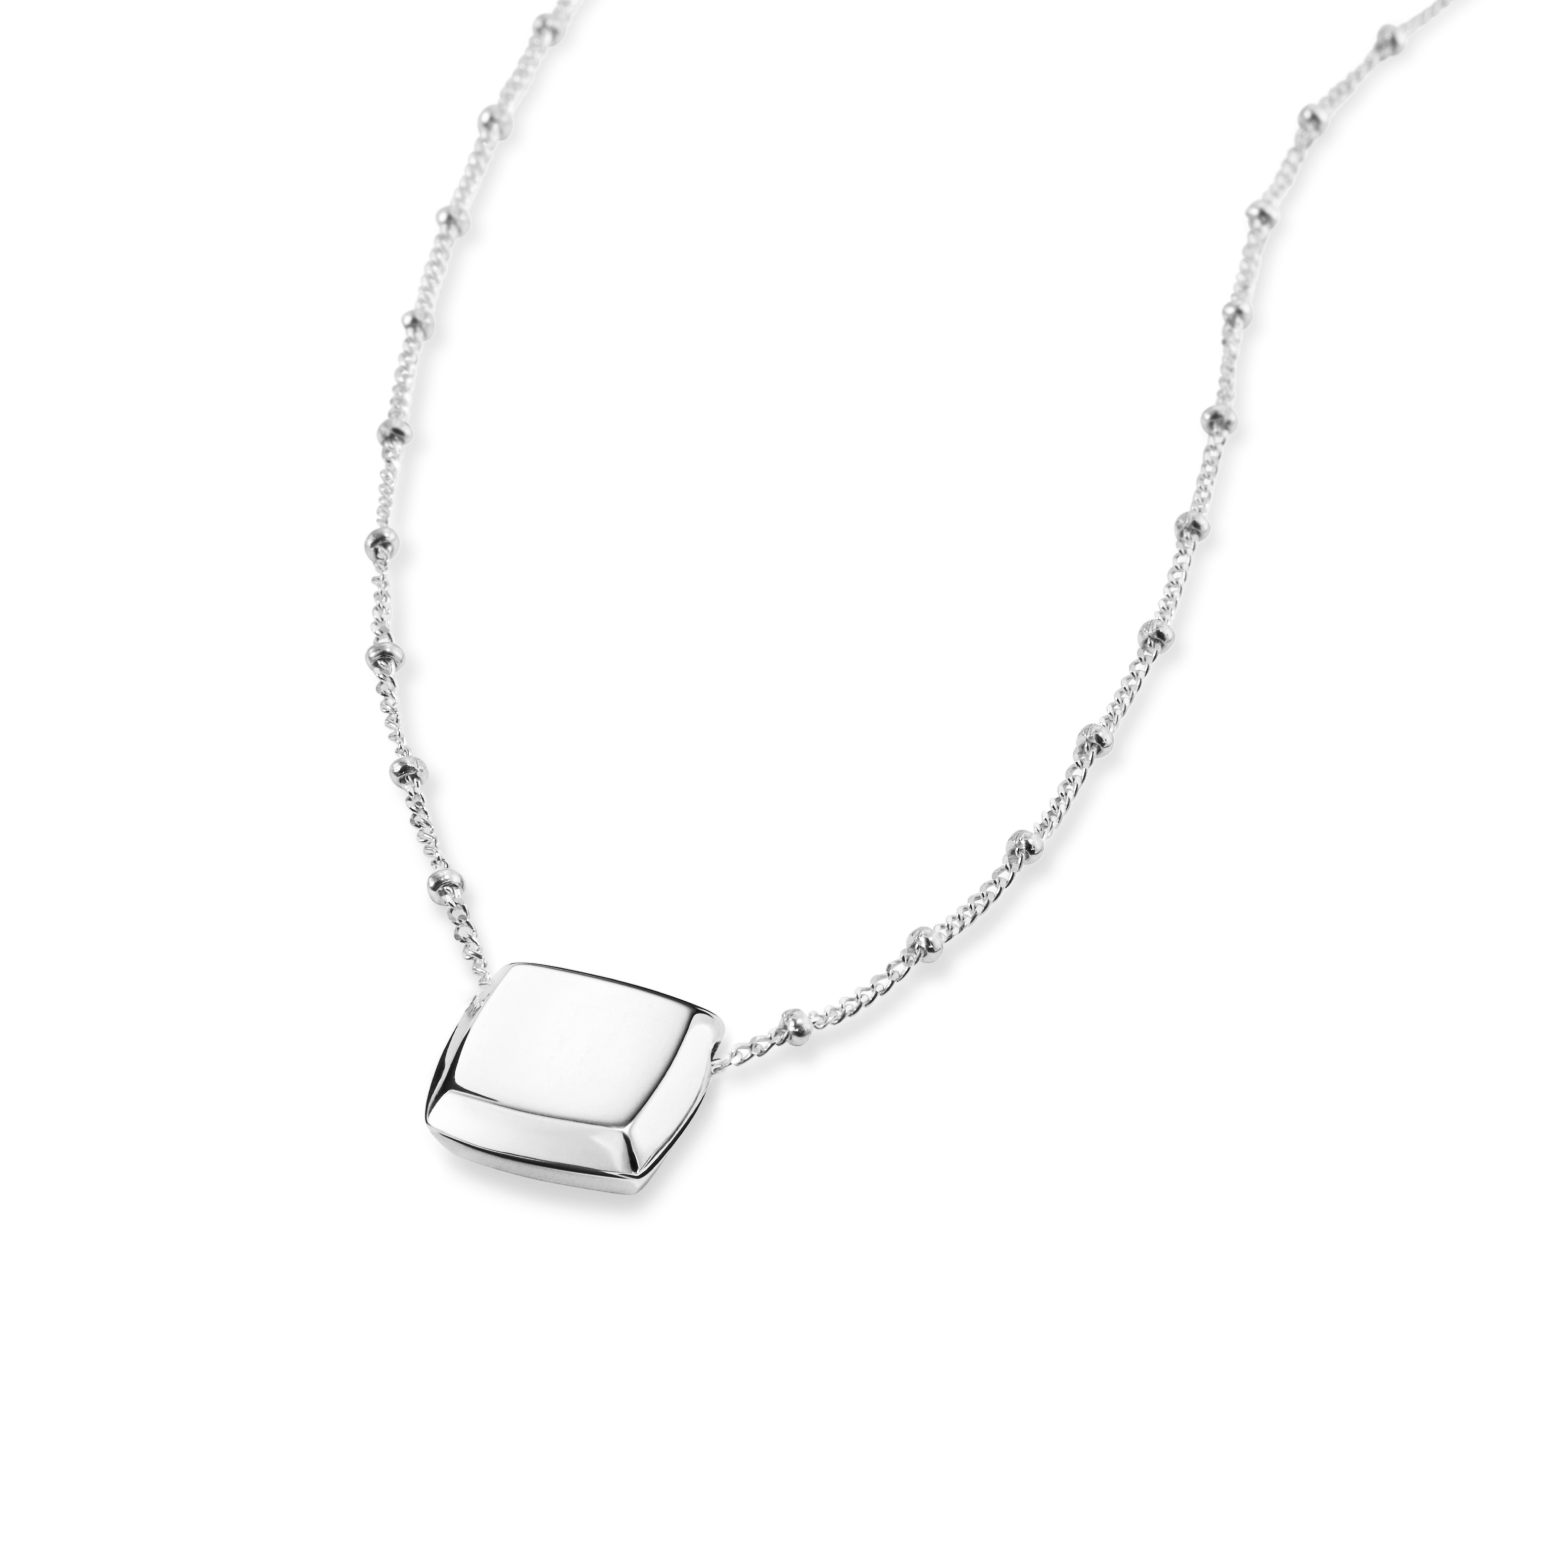 The Cushion Pendant